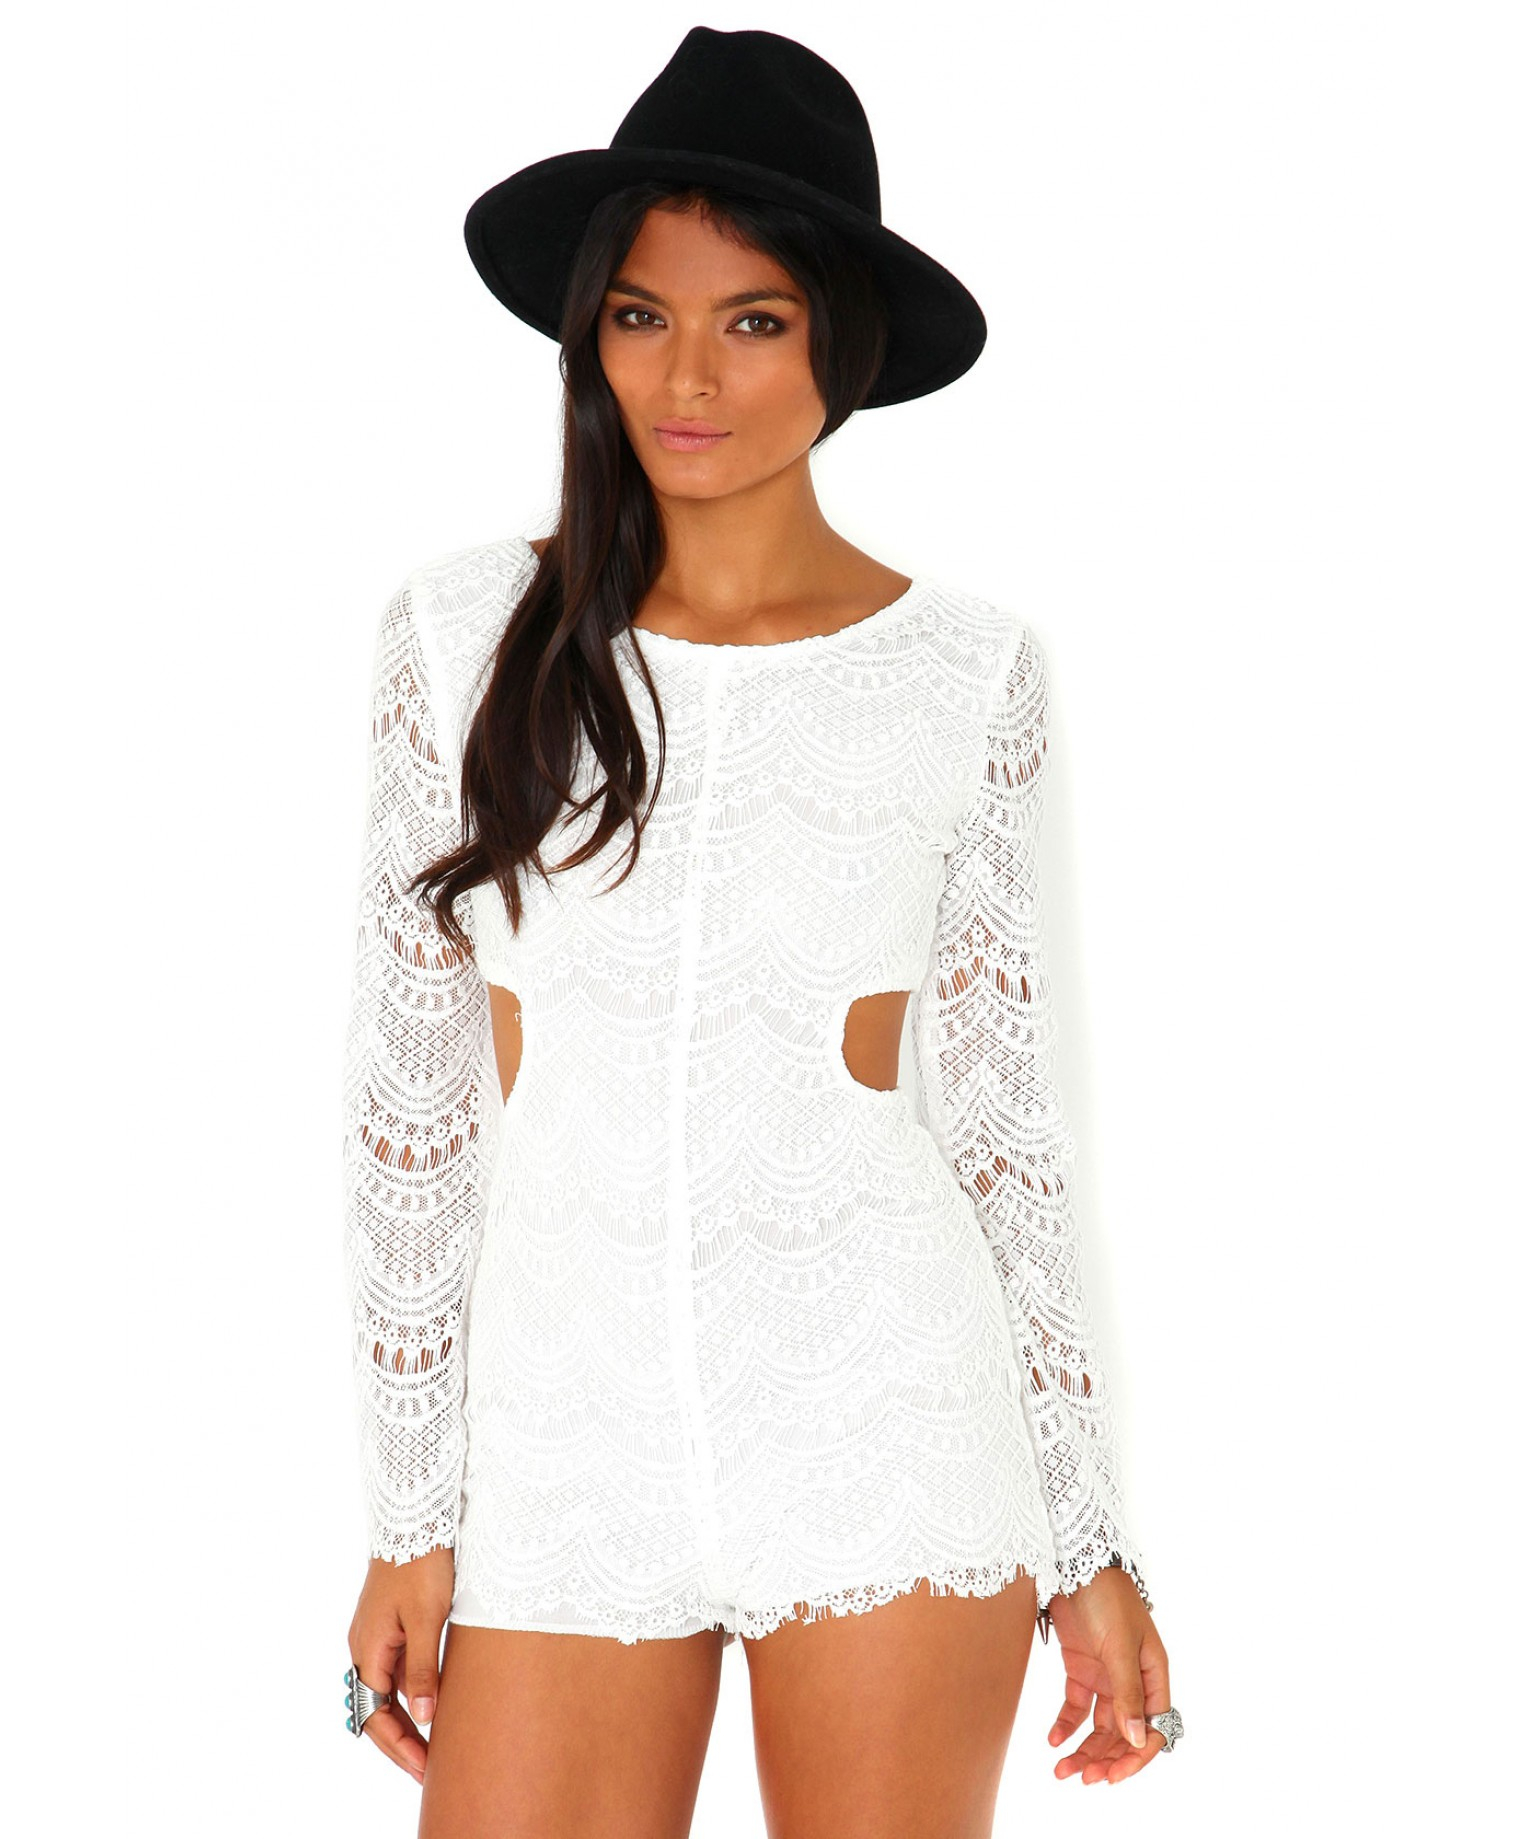 a16ceab106f4 Lyst - Missguided Racquel Long Sleeve Cut Out Lace Playsuit